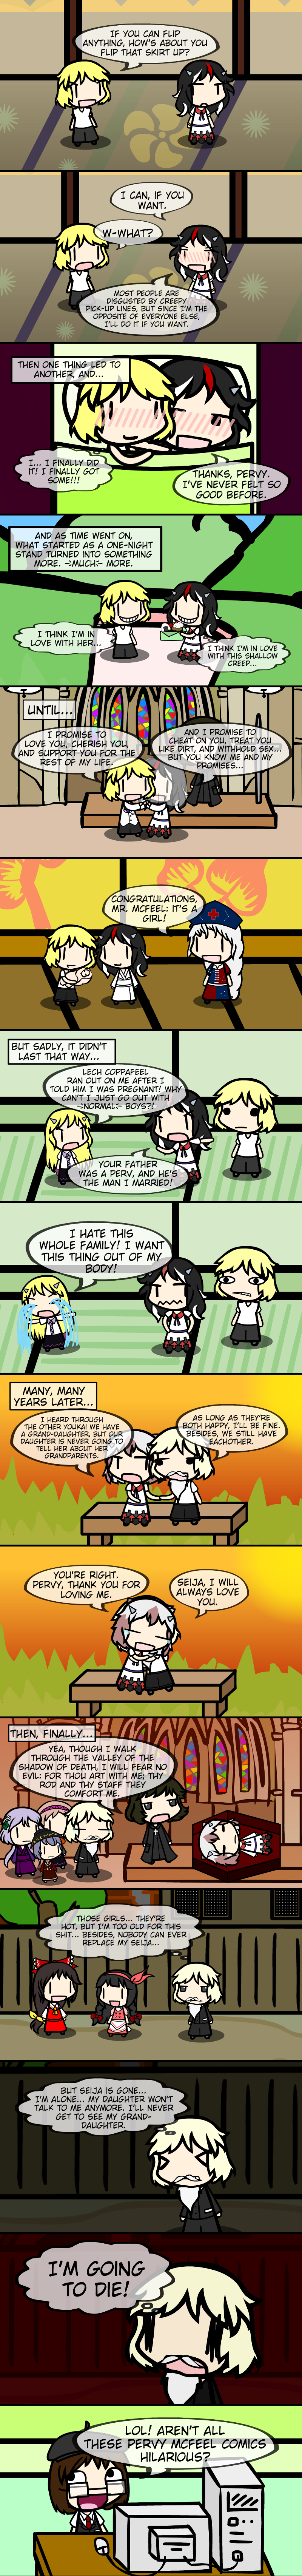 McFeel Misadventures: Reality Ensues    by Spaztique on